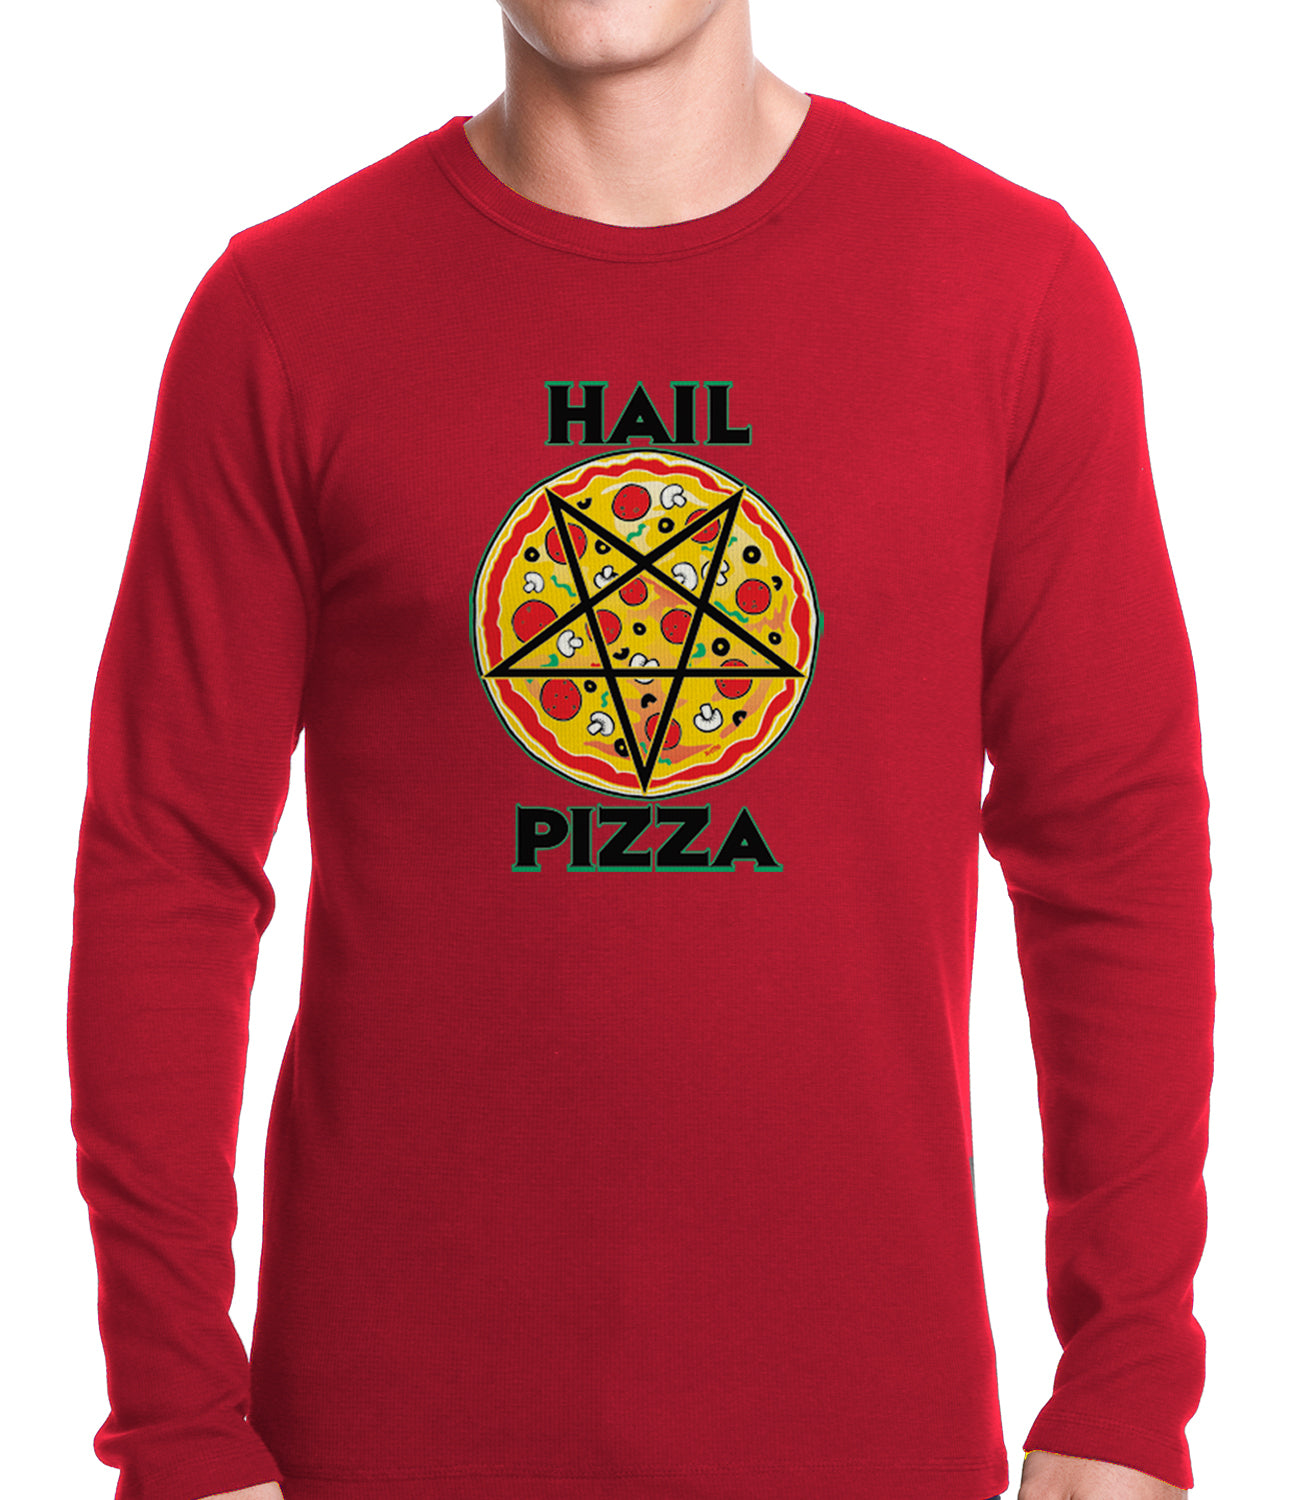 Hail Pizza Thermal Shirt